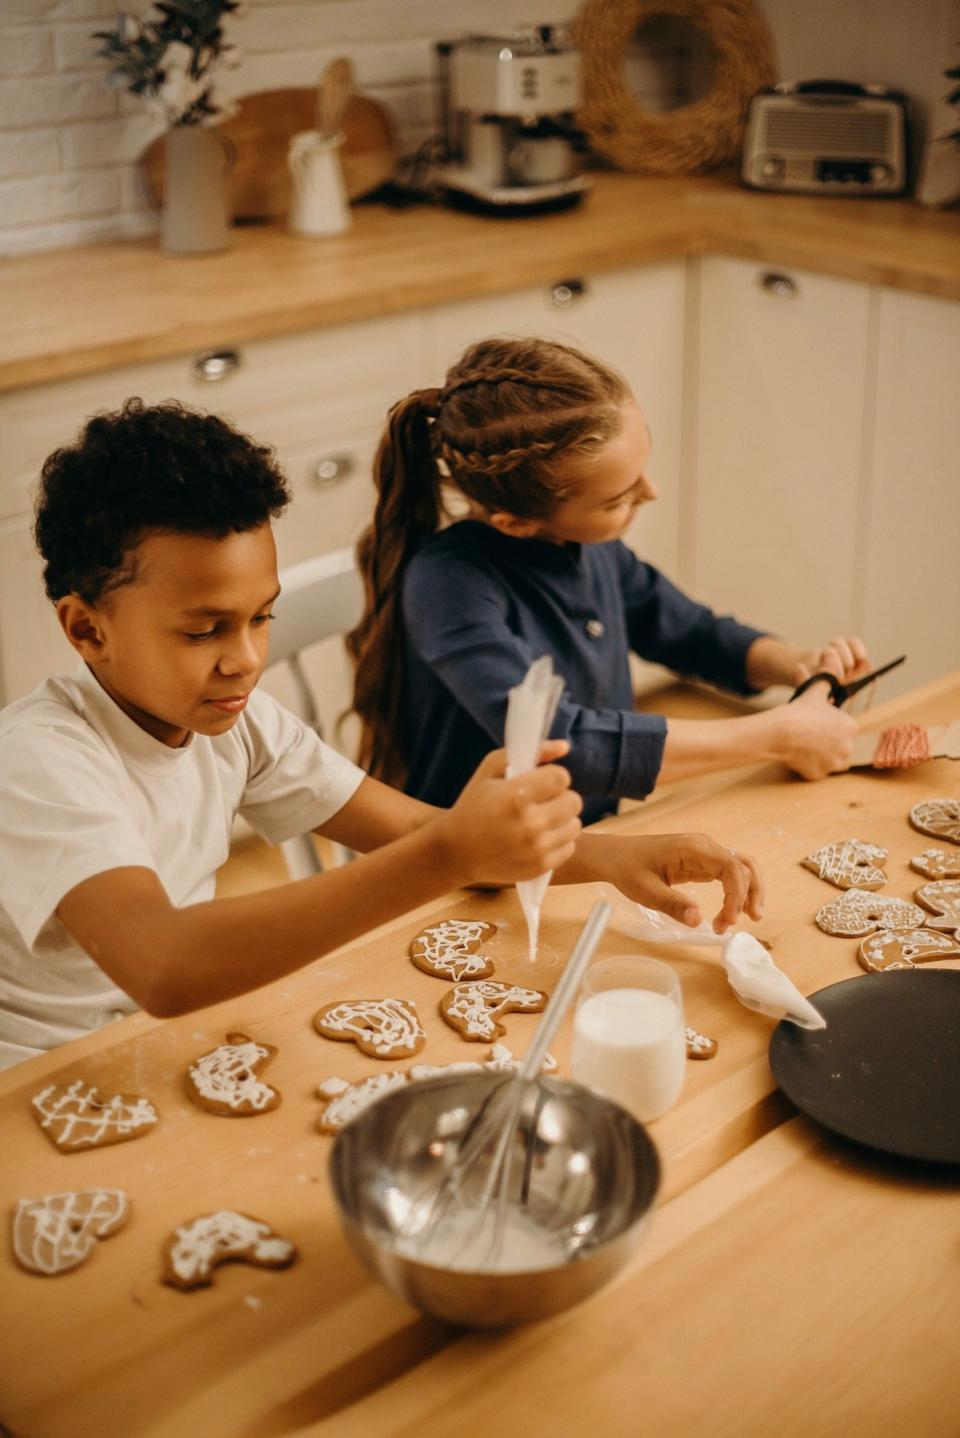 Two kids decorate cookies in the kitchen